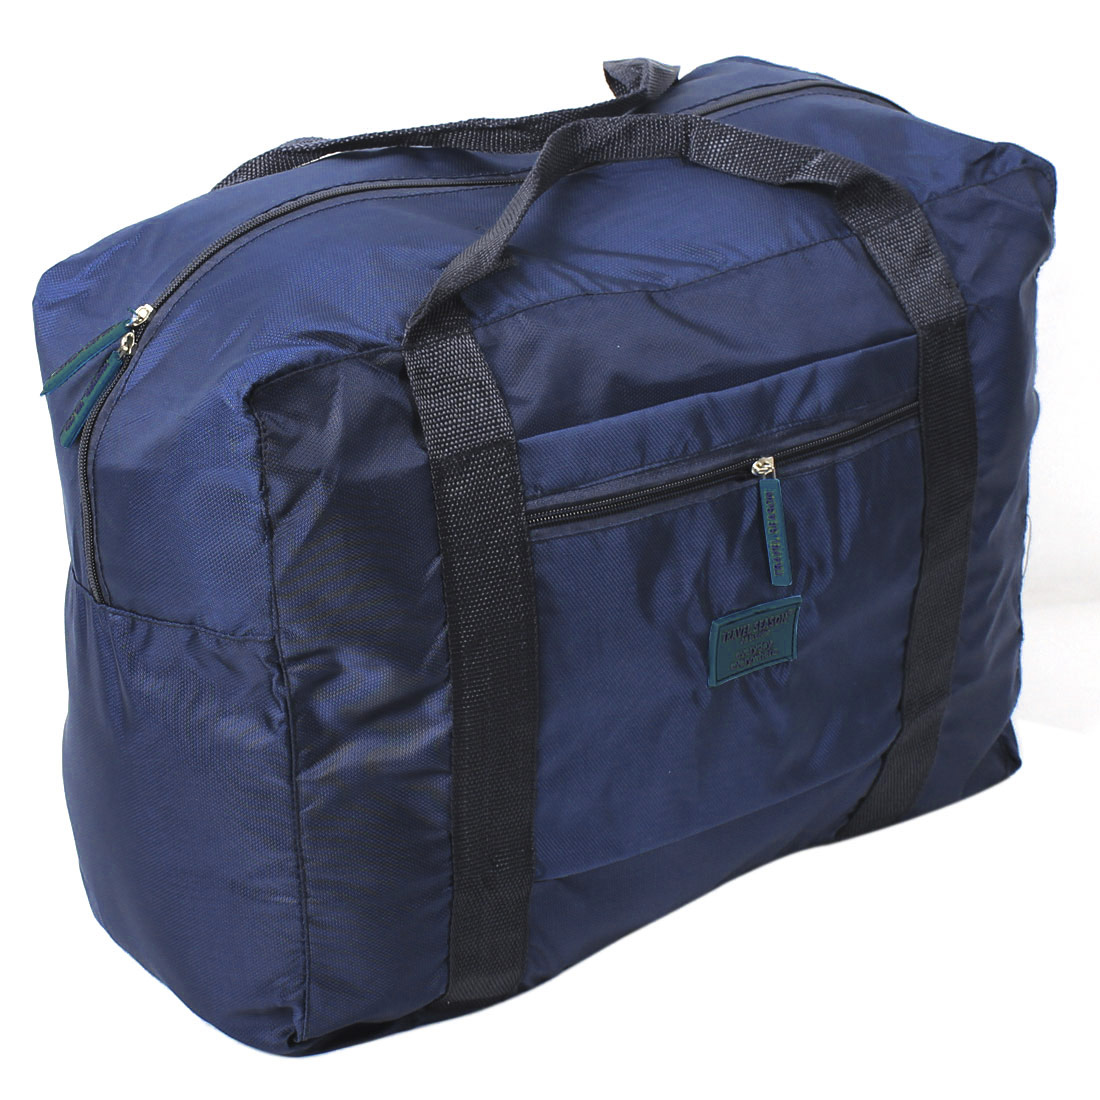 Nylon Foldable Portable Travel Luggage Clothes Storage Bag Dark Blue